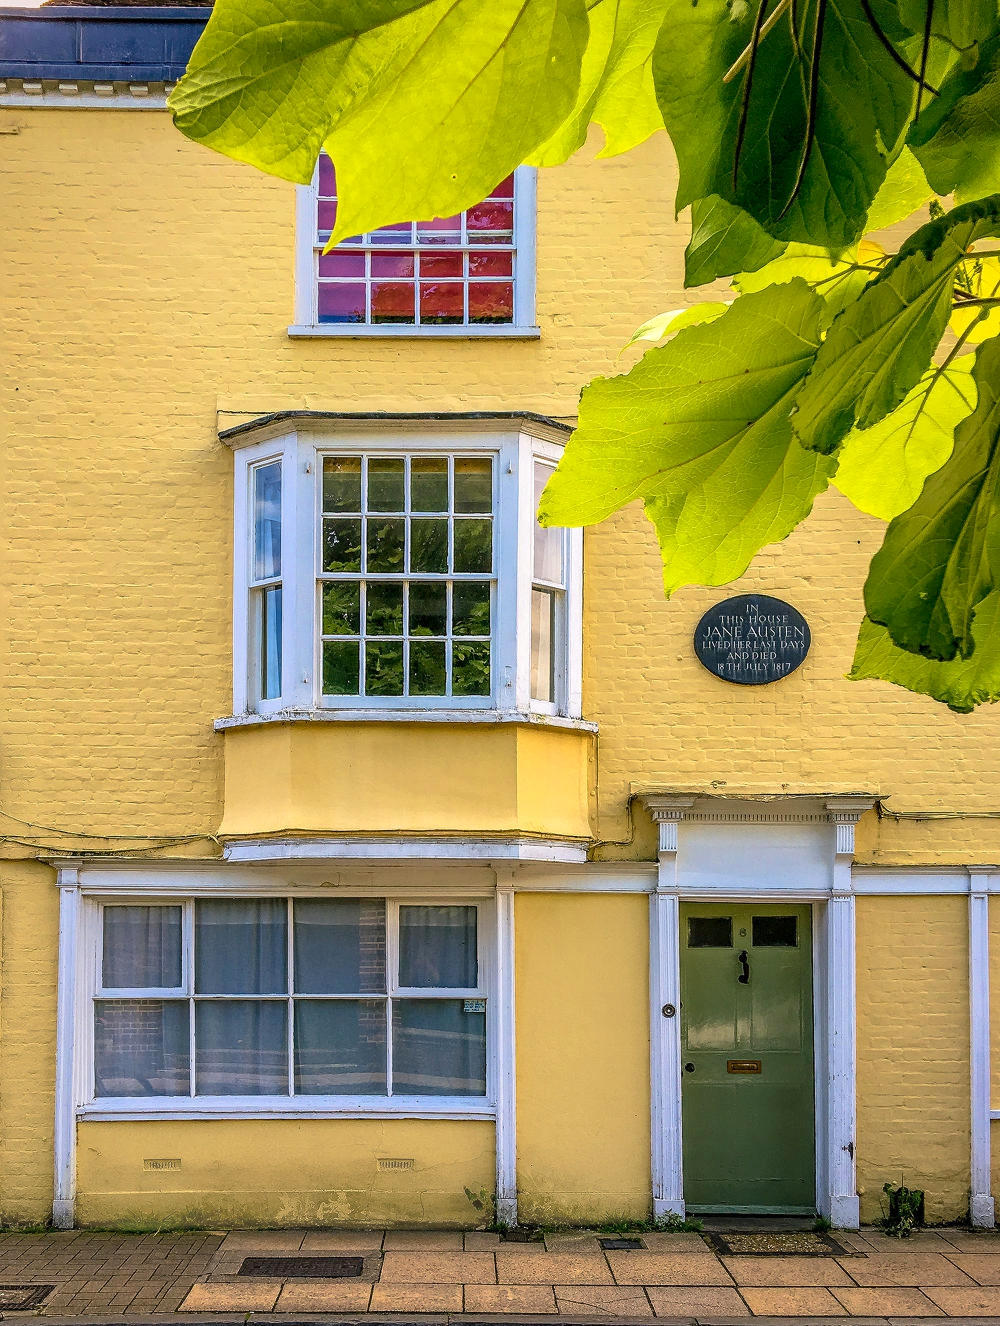 Jane Austen's house on College Street Winchester. Credit Anguskirk, flickr